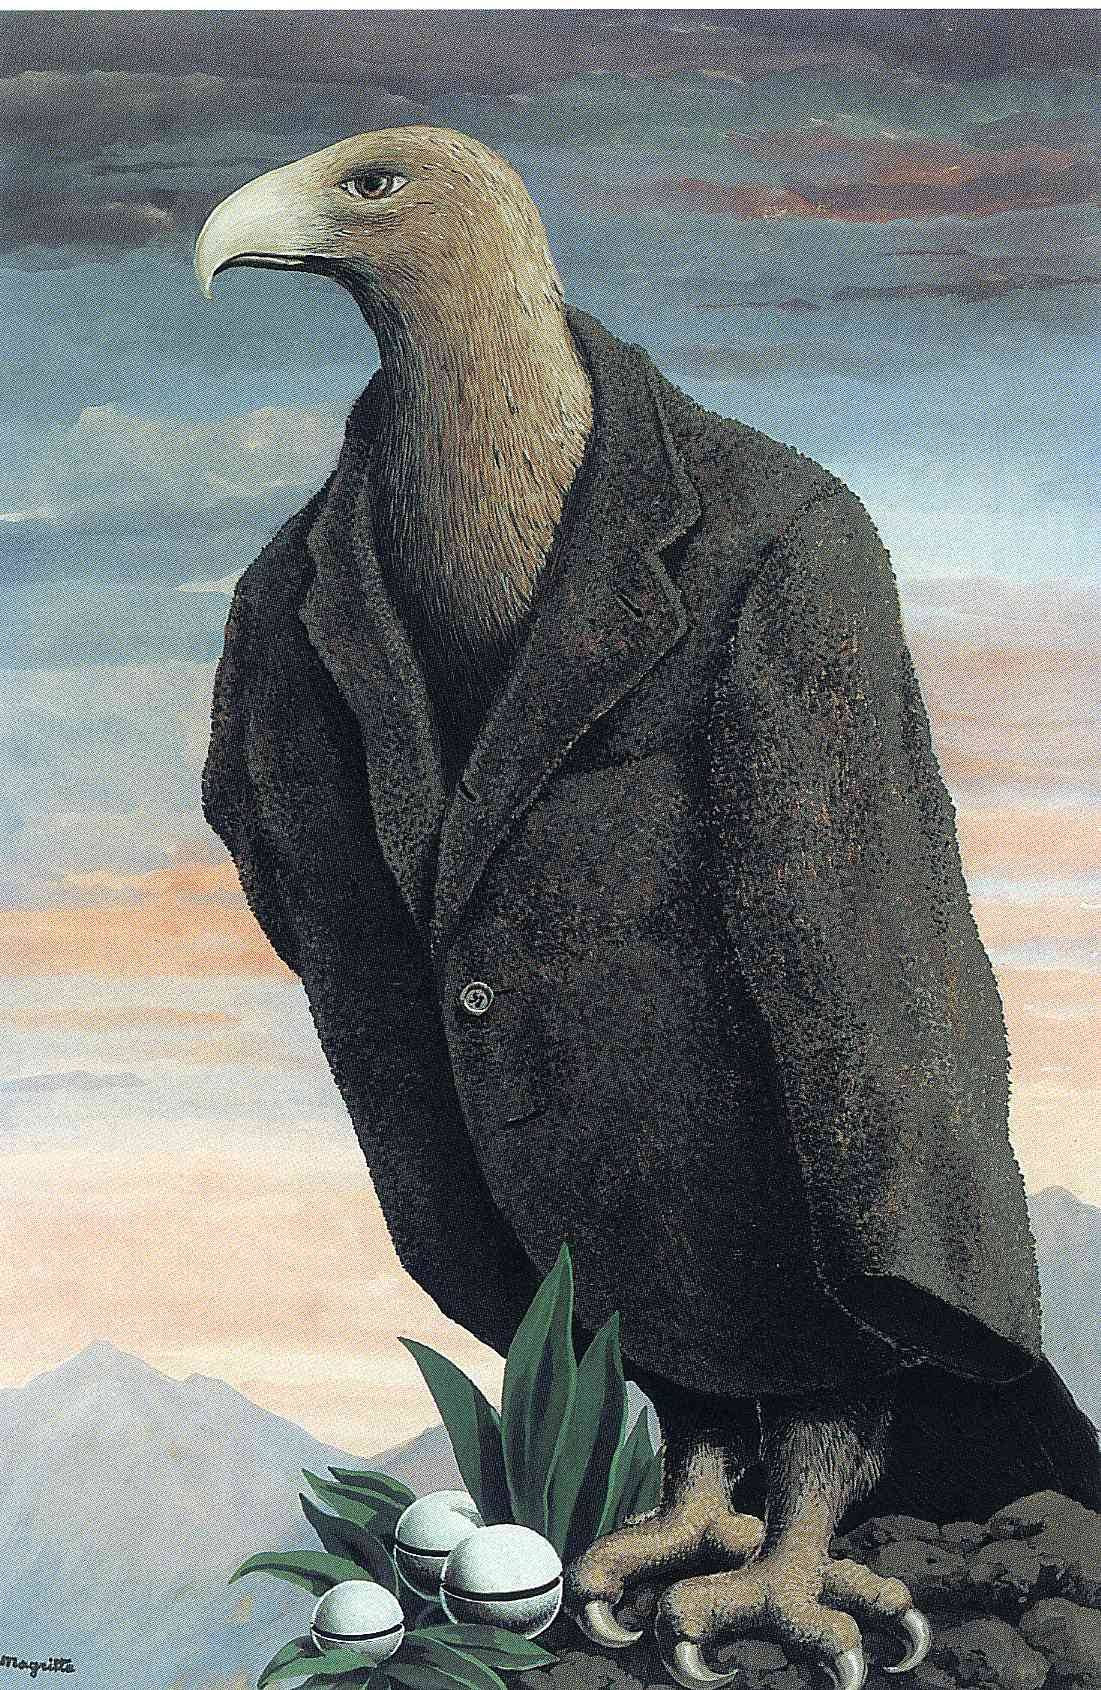 The present, 1939 Rene Magritte